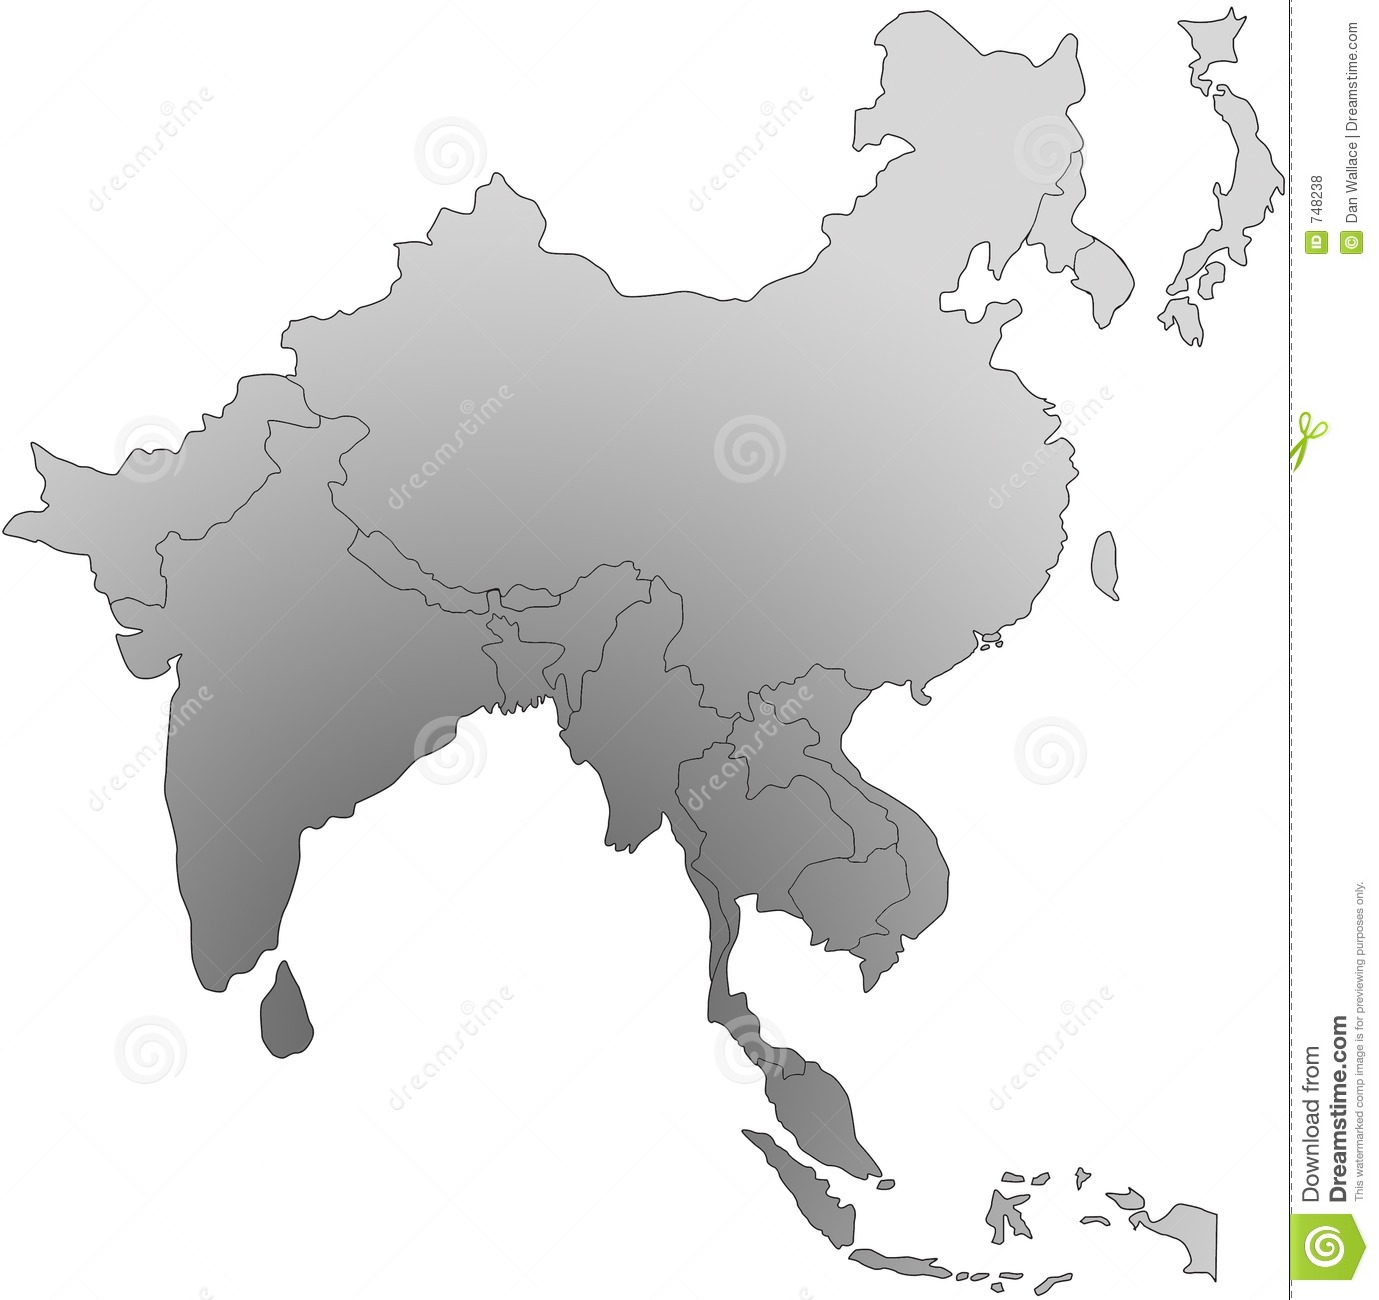 South East Asia Map Royalty Free Photos Image 748238 – East Asia and Southeast Asia Map